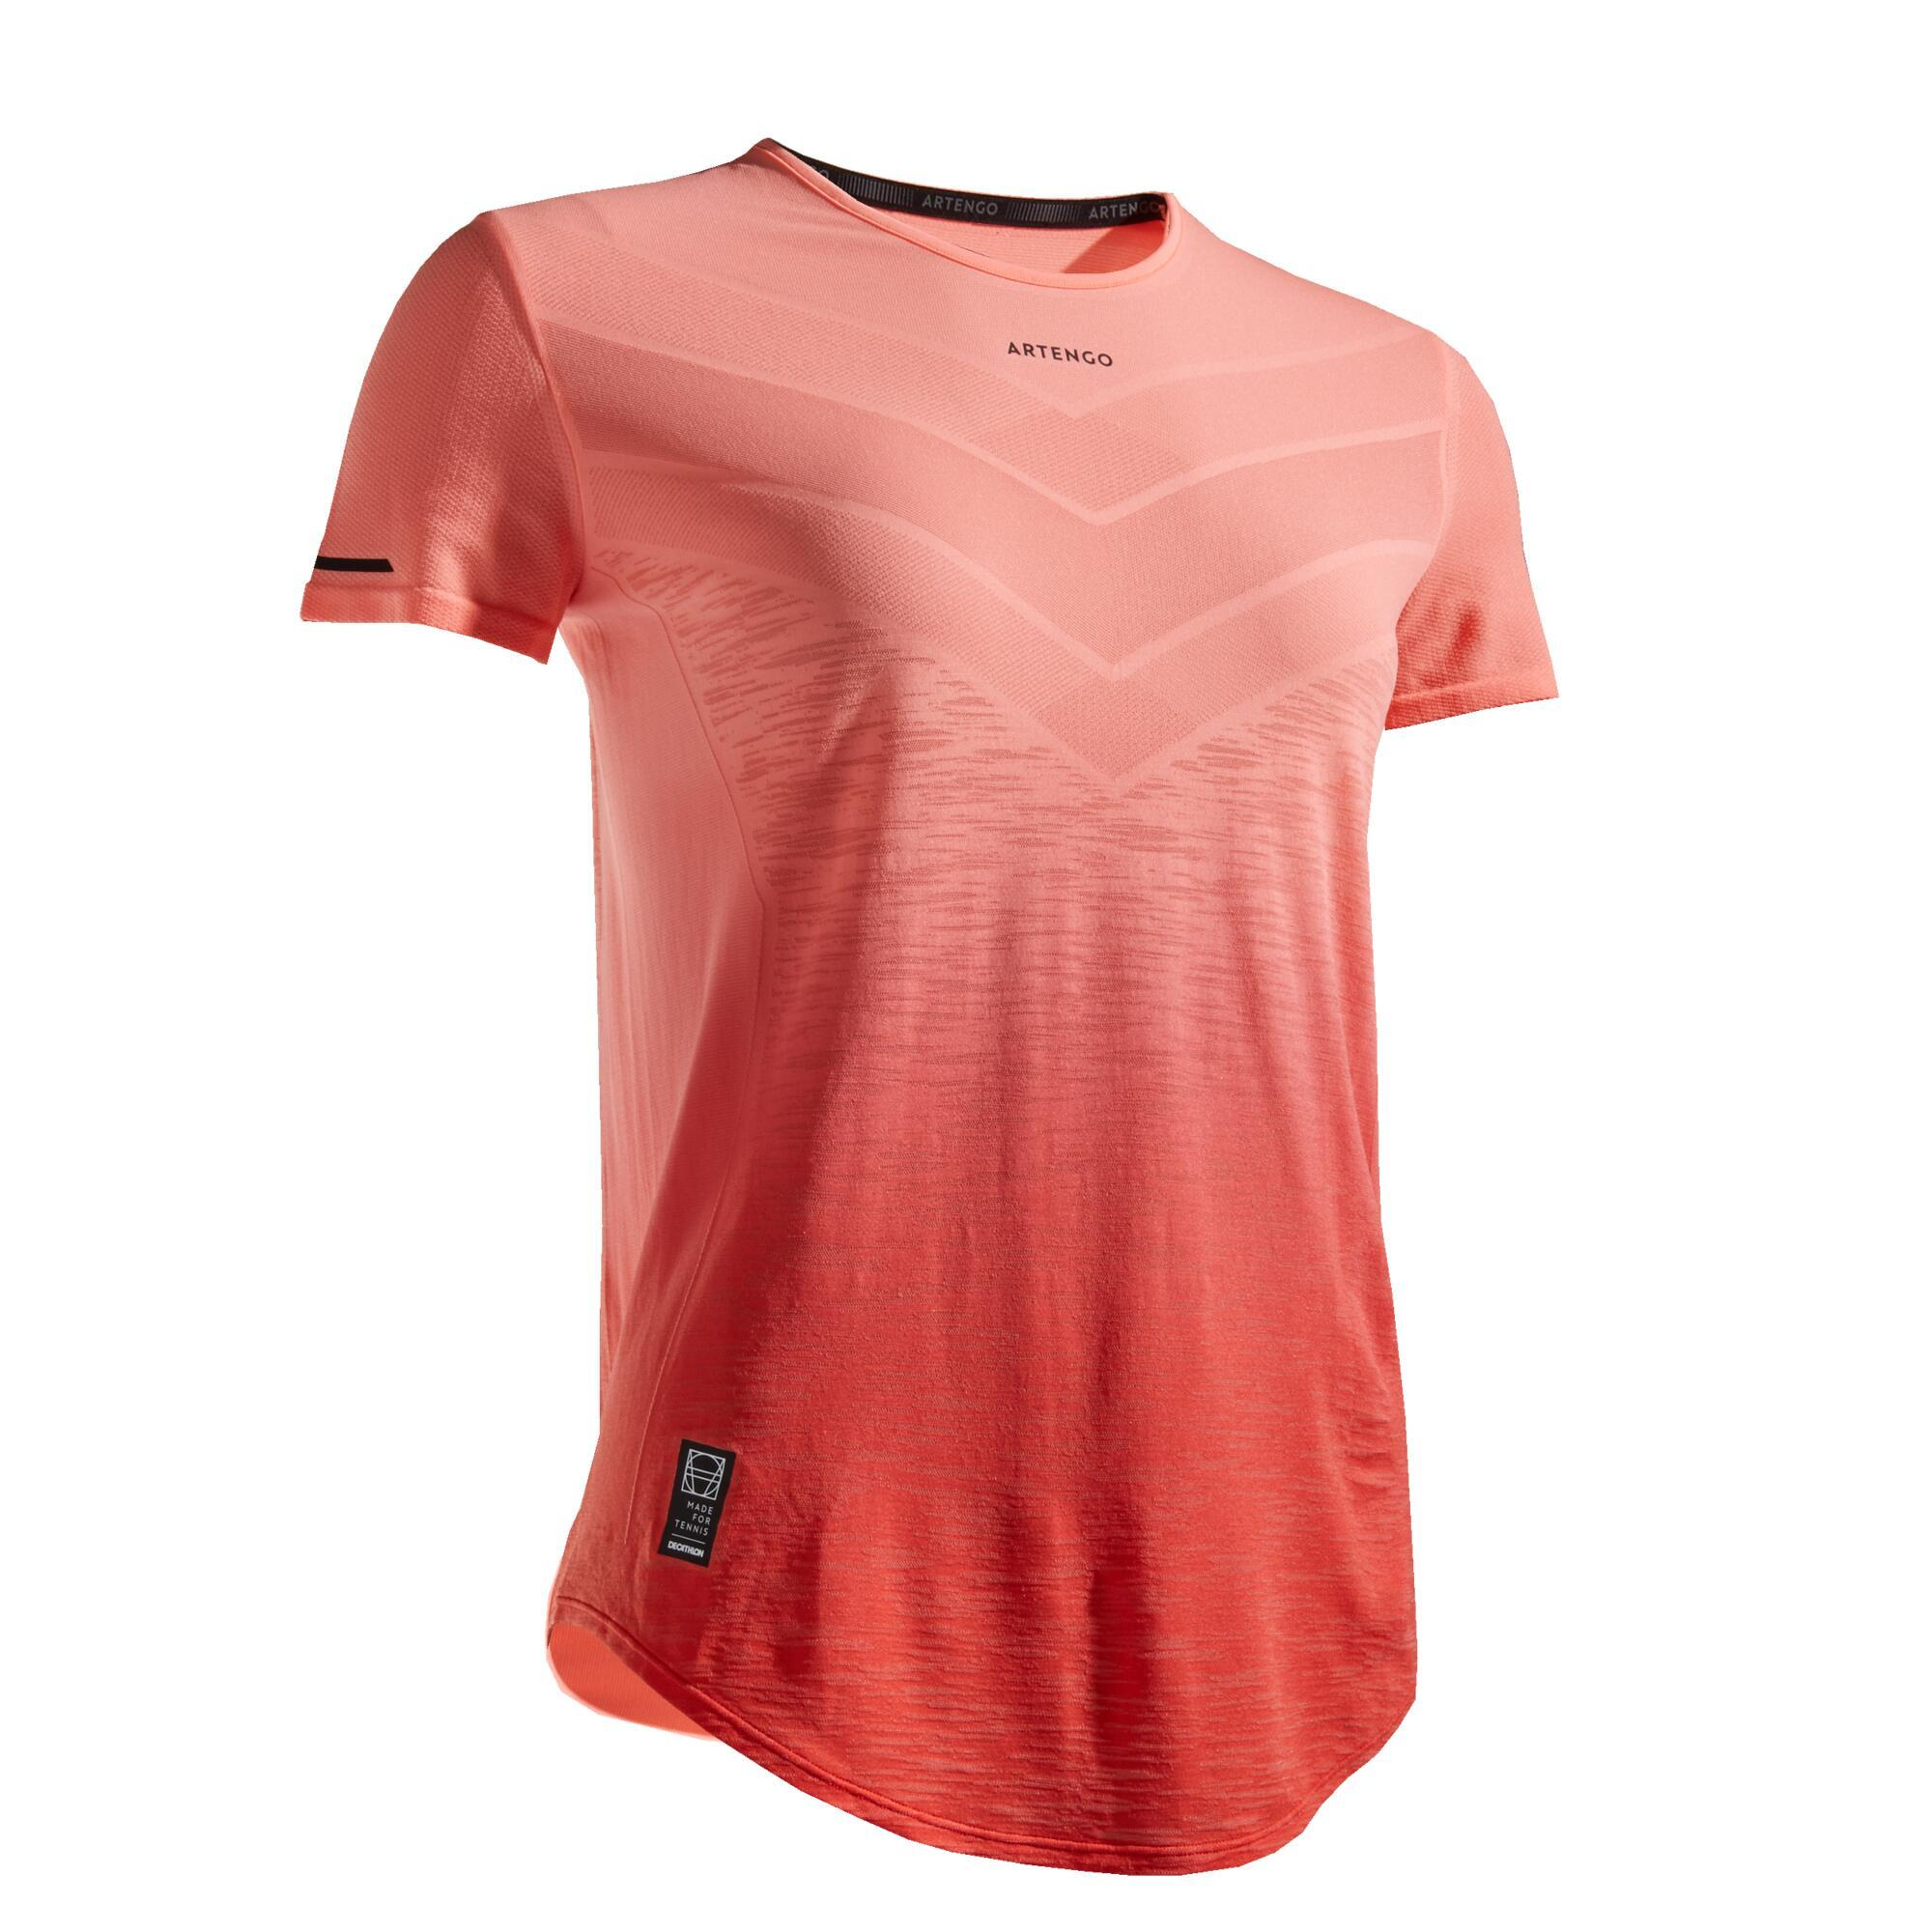 Tennis T-Shirt Damen TS Light 990 koralle